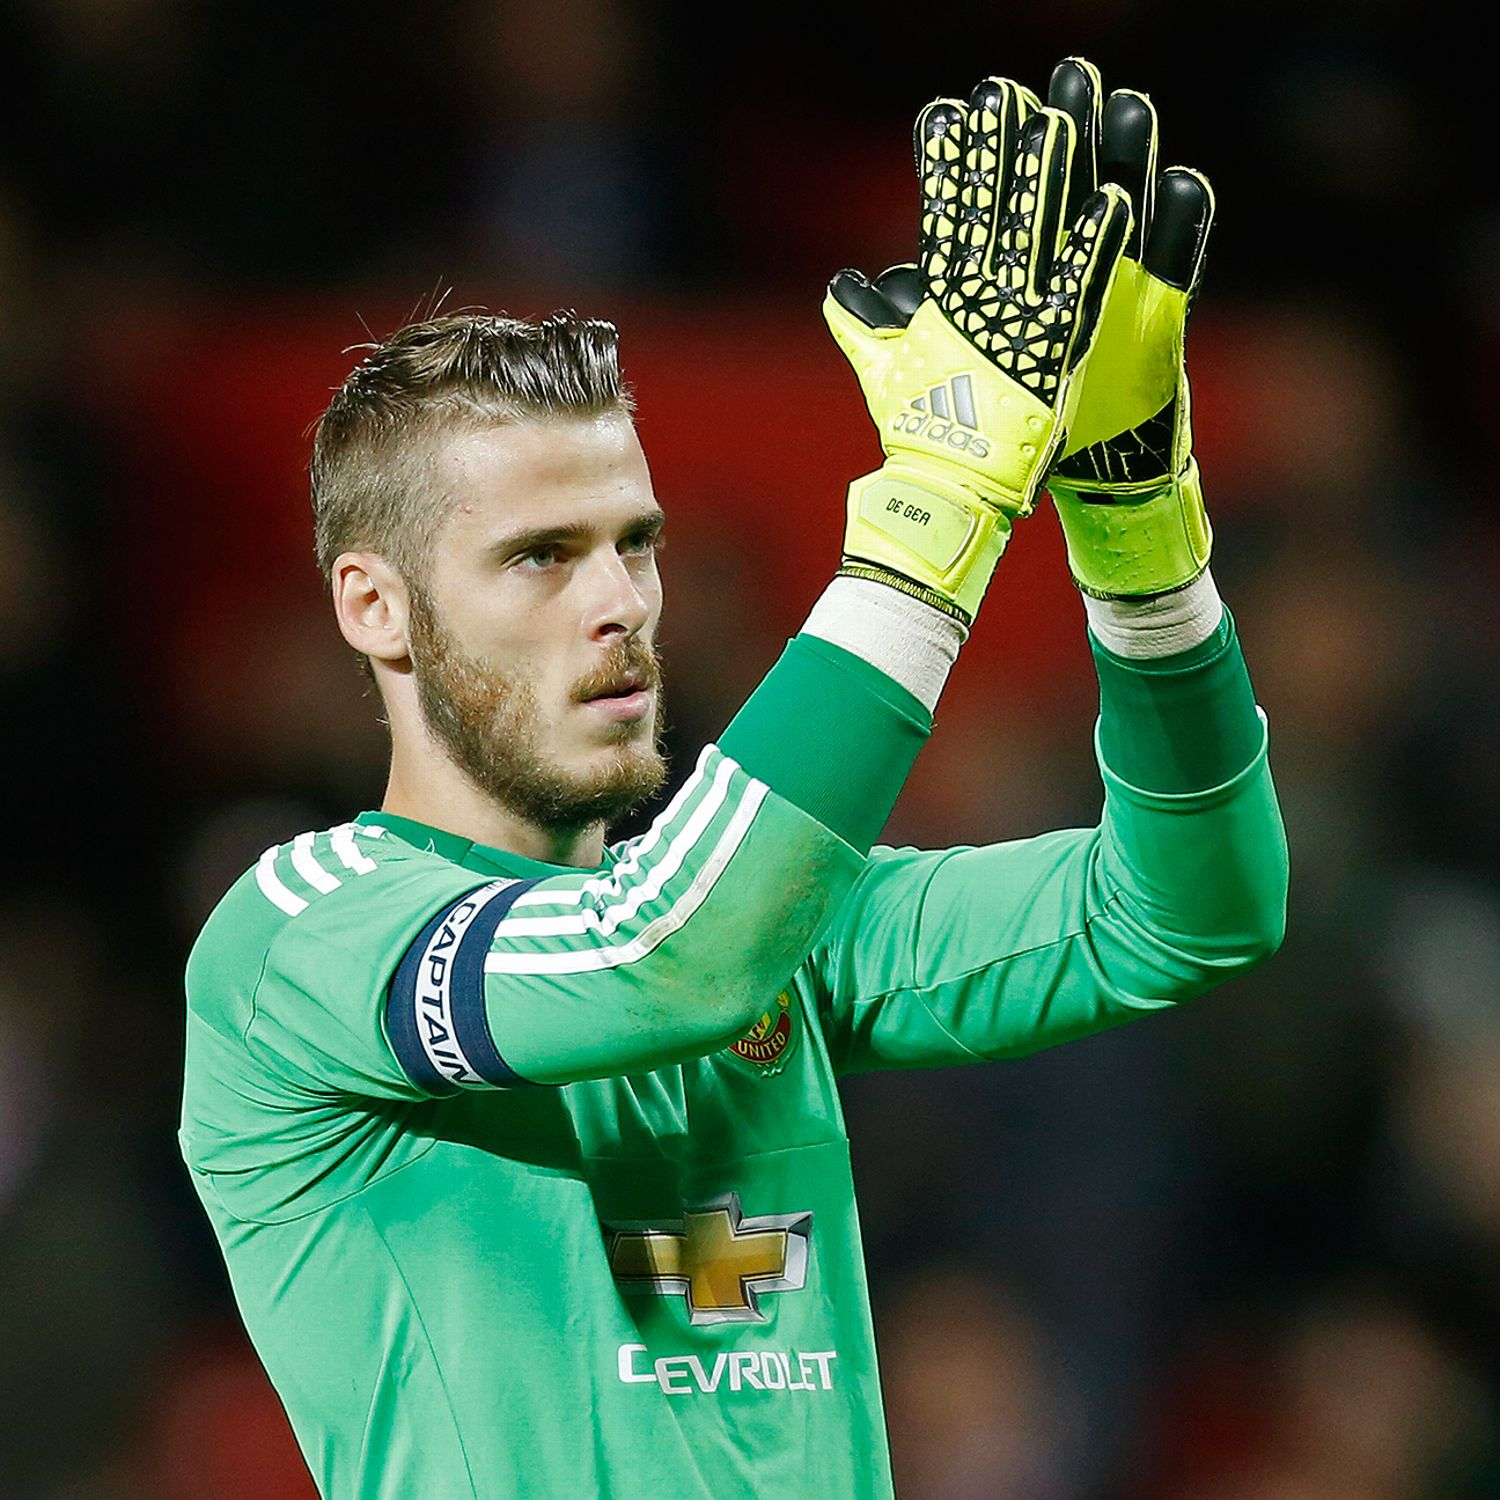 Liverpool Barcelona V S Man Unt Real Madrid: David De Gea Happy Man United Real Madrid Still Want